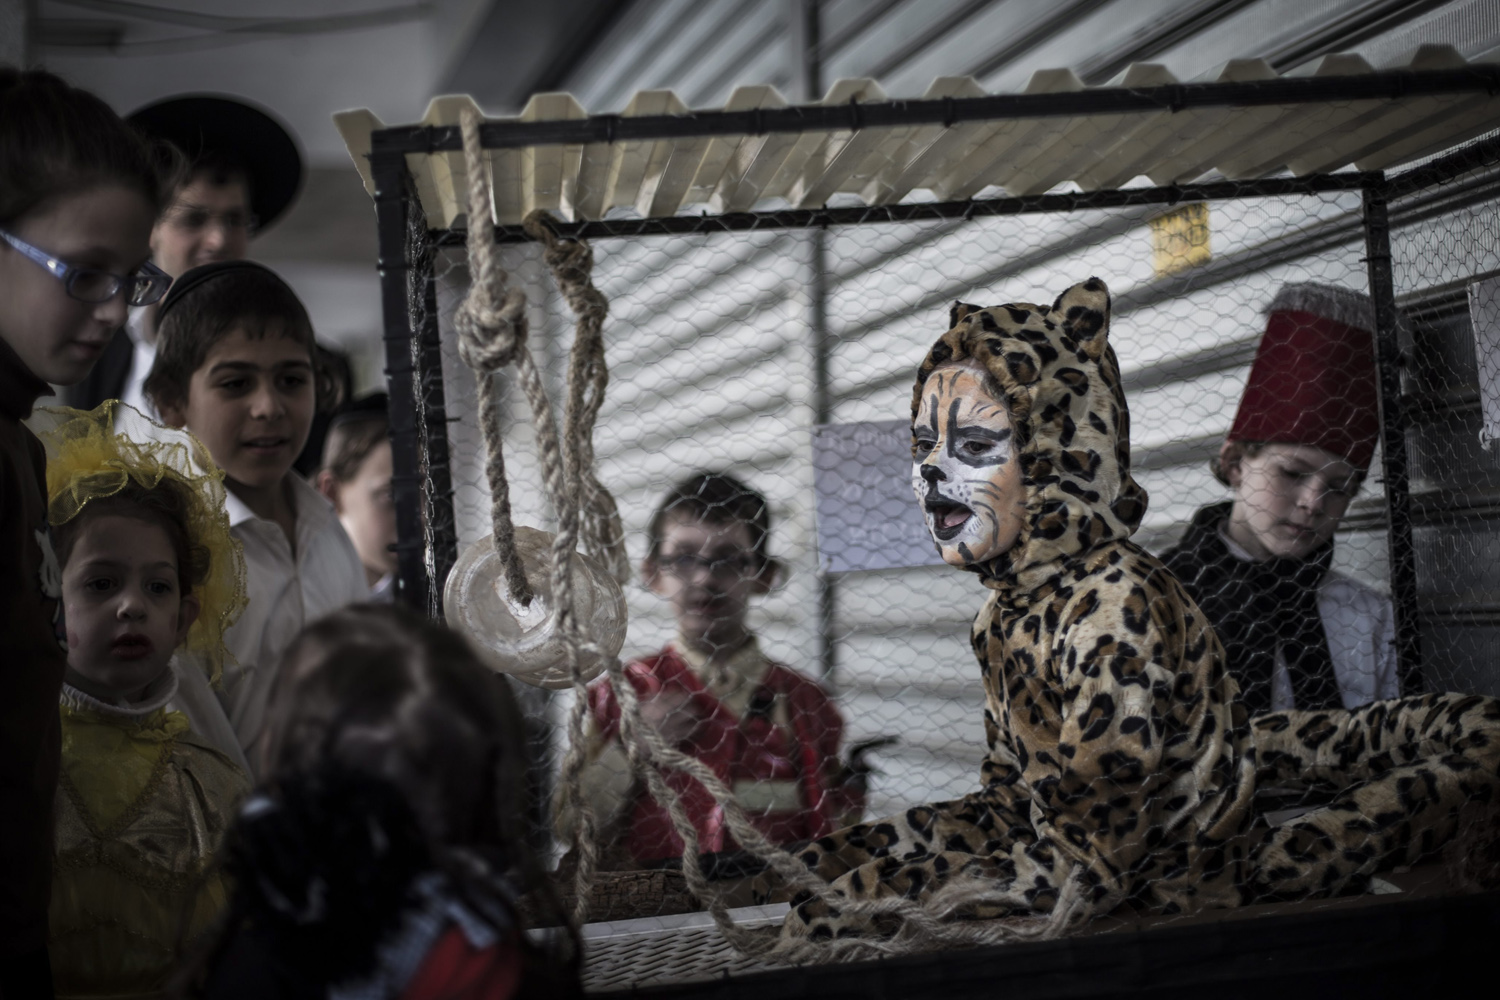 Mar. 16 , 2014. Ultra Orthodox Jewish children look at a girl costumed as a leopard in a cage for Purim on a street in Bnei Brak, outside Tel Aviv, Israel.